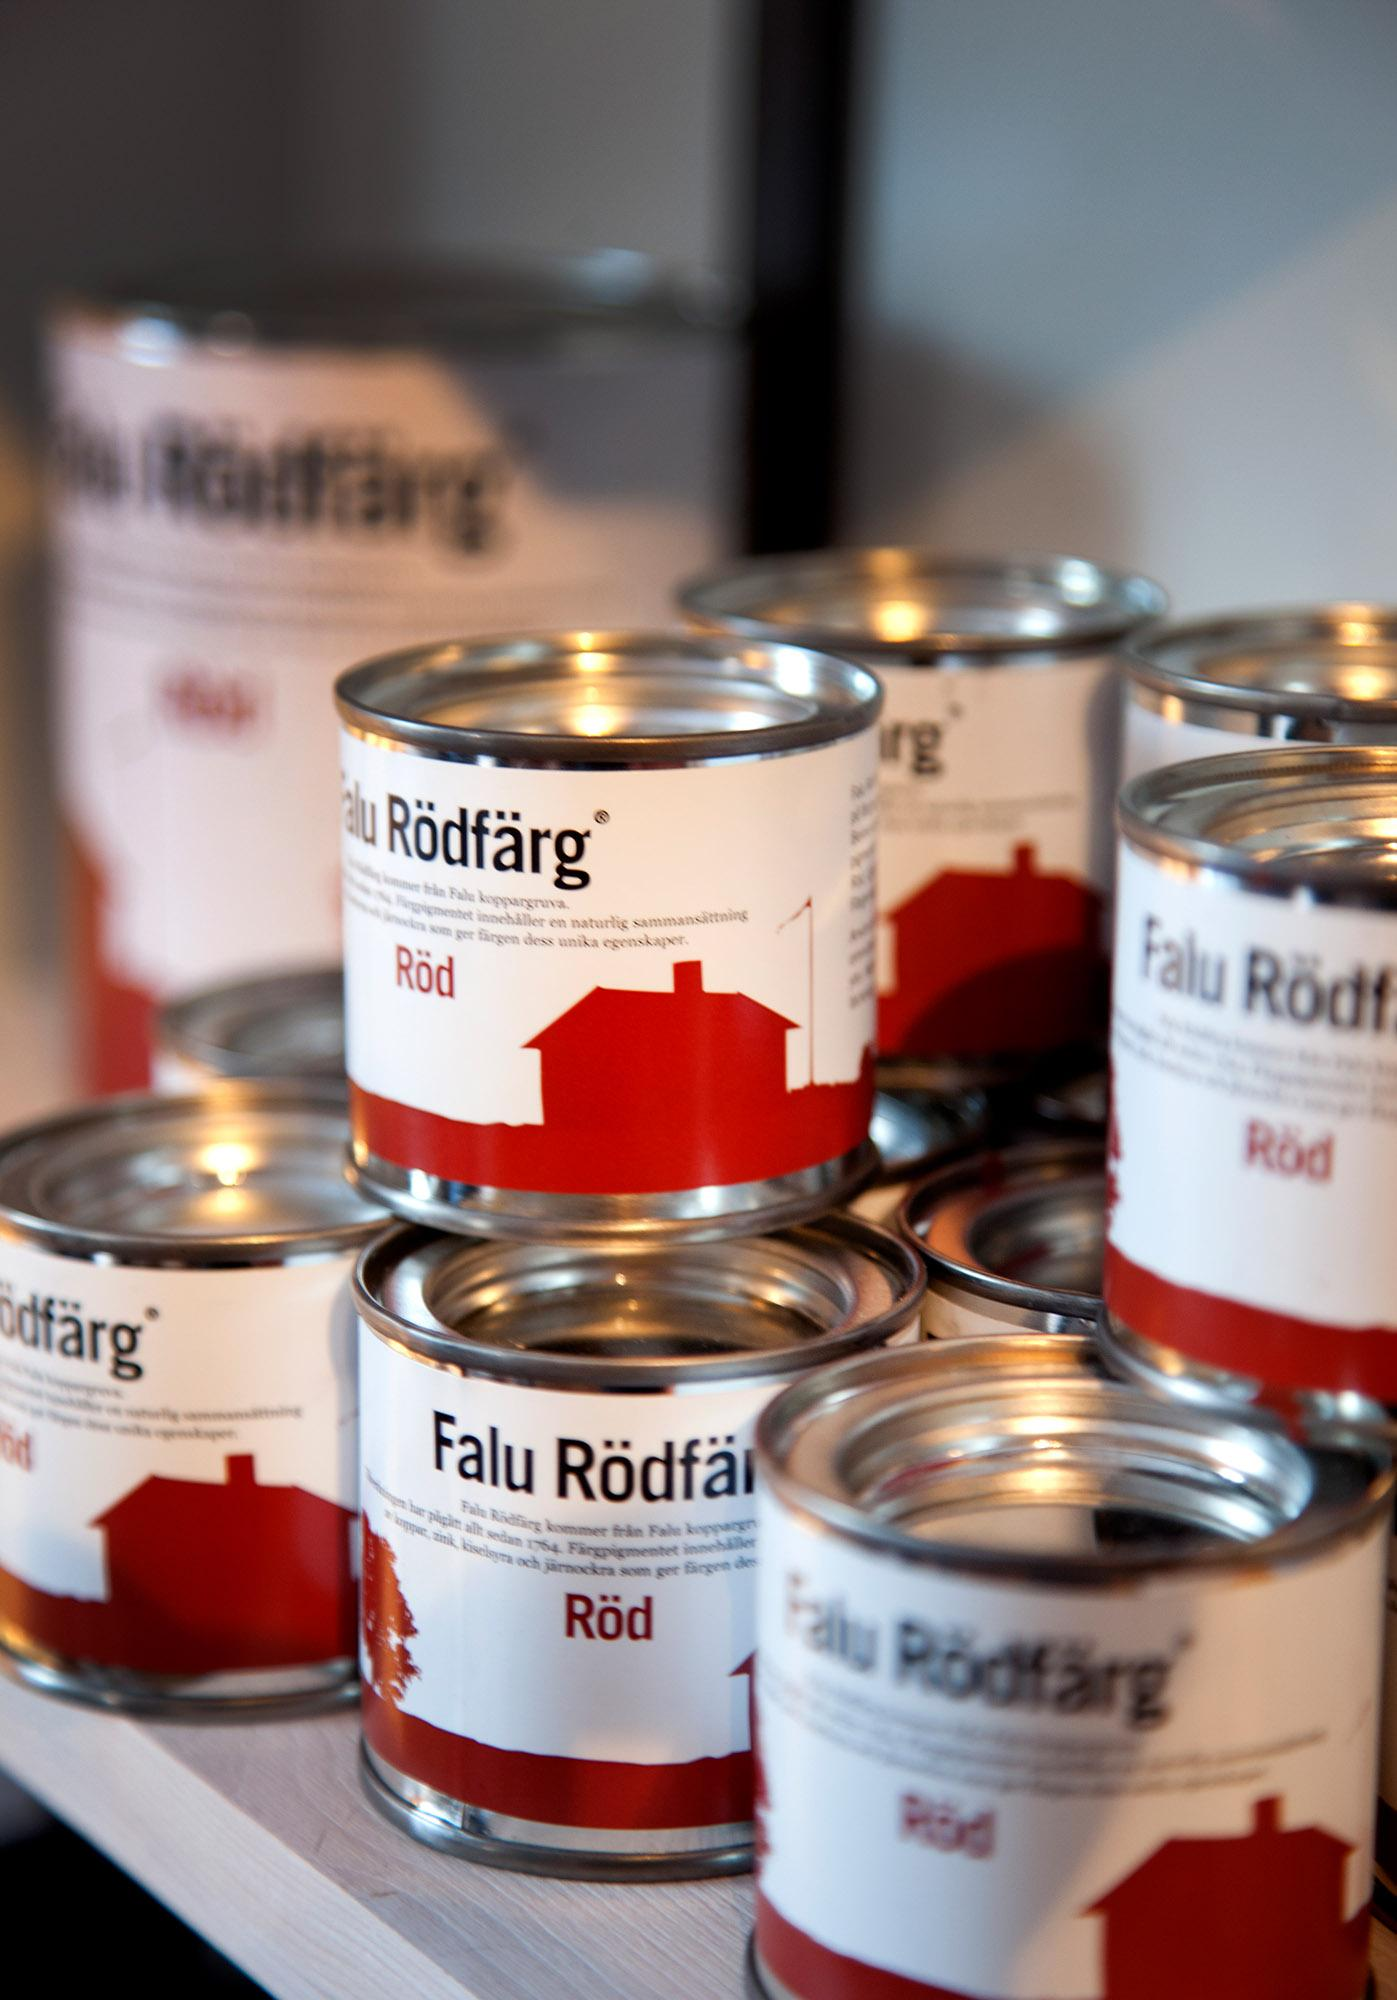 The traditional red paint is produced by Falu Rödfärg at the on-site factory. – © Richard Lindor